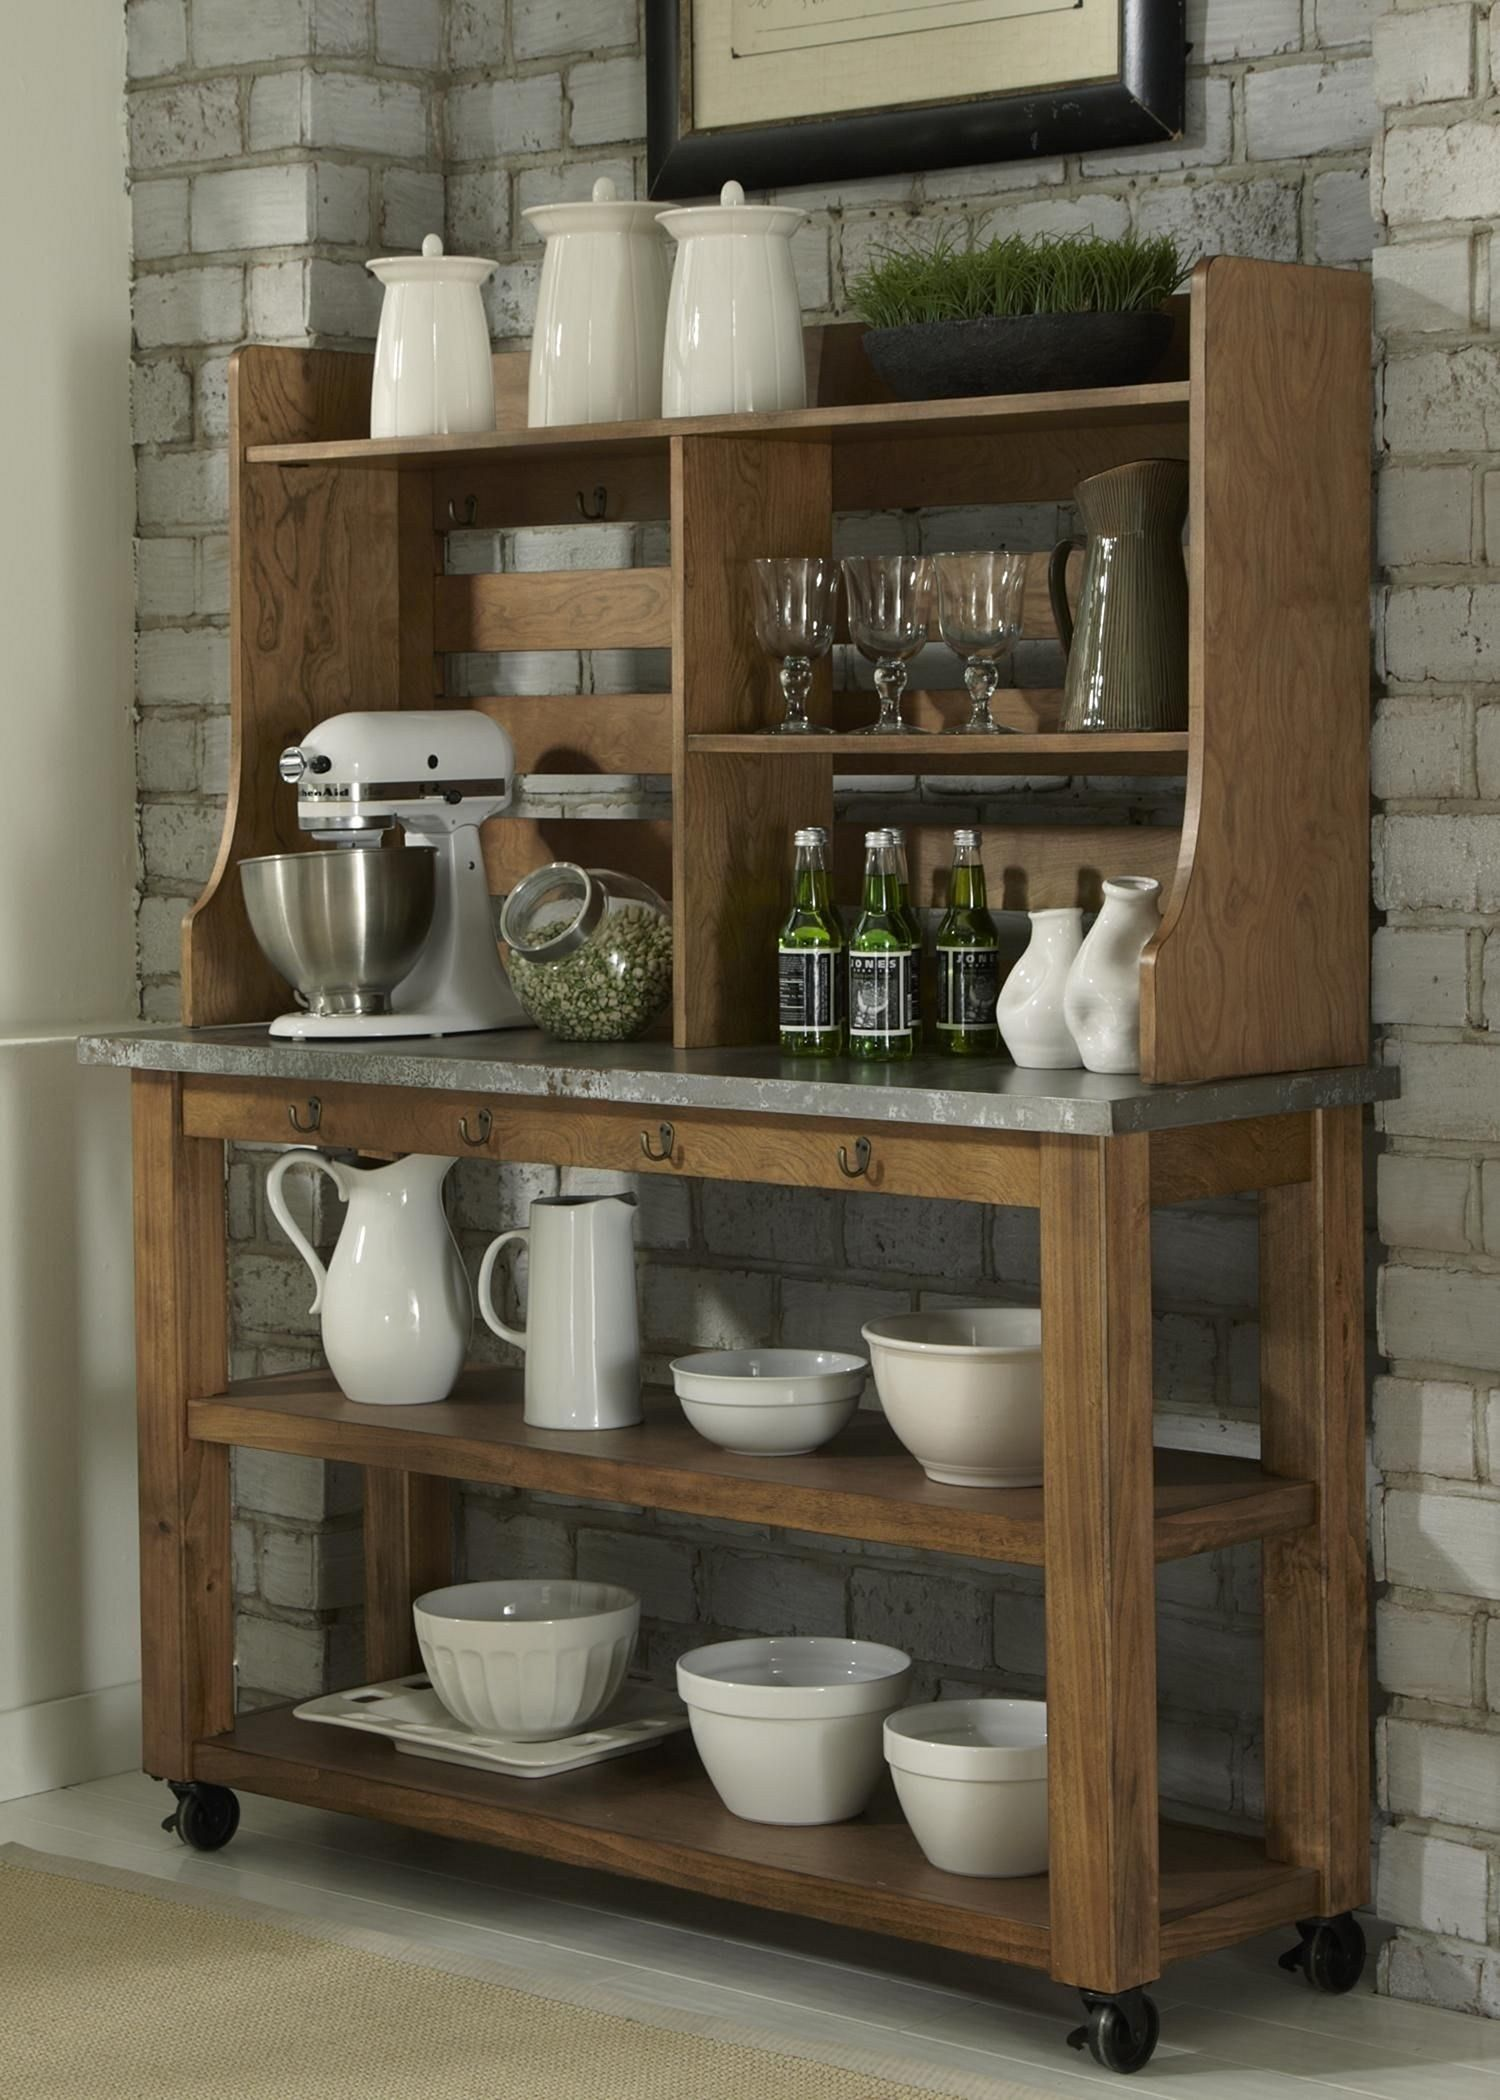 Awesome Industrial Kitchen Wood Rack Ideas You Must Try Teracee Wooden Shelves Kitchen Wooden Kitchen Bakers Rack Kitchen